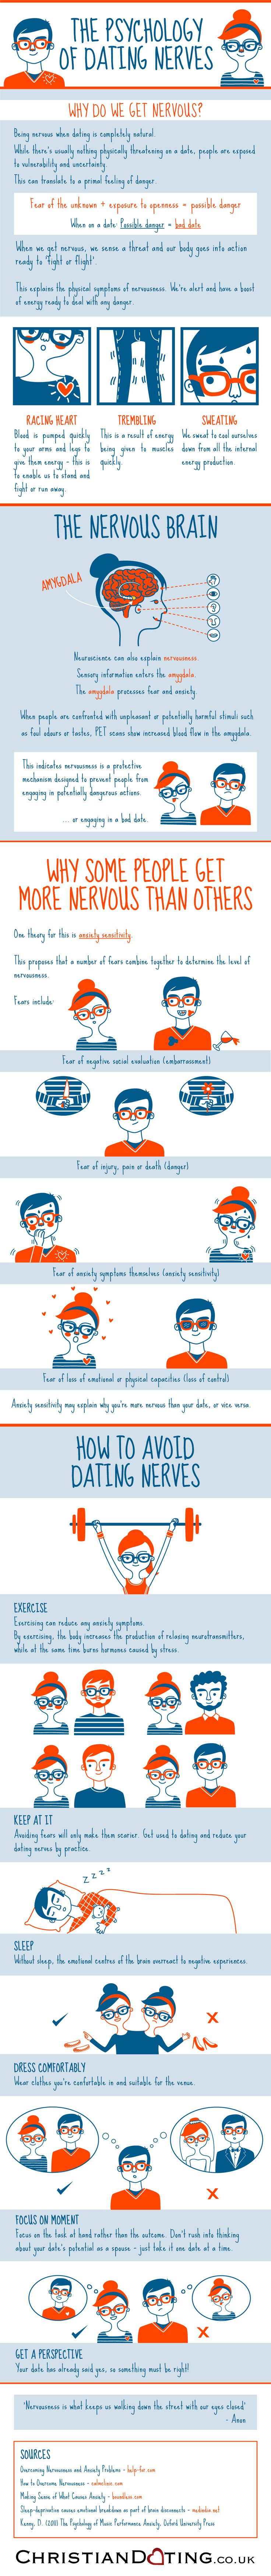 #INFOgraphic > First Date Psychology: Don't worry about feeling nervous before your first date, that's really normal. However, if you want to change it, here are some tips.  > http://infographicsmania.com/first-date-psychology/?utm_source=Pinterest&utm_medium=INFOGRAPHICSMANIA&utm_campaign=SNAP